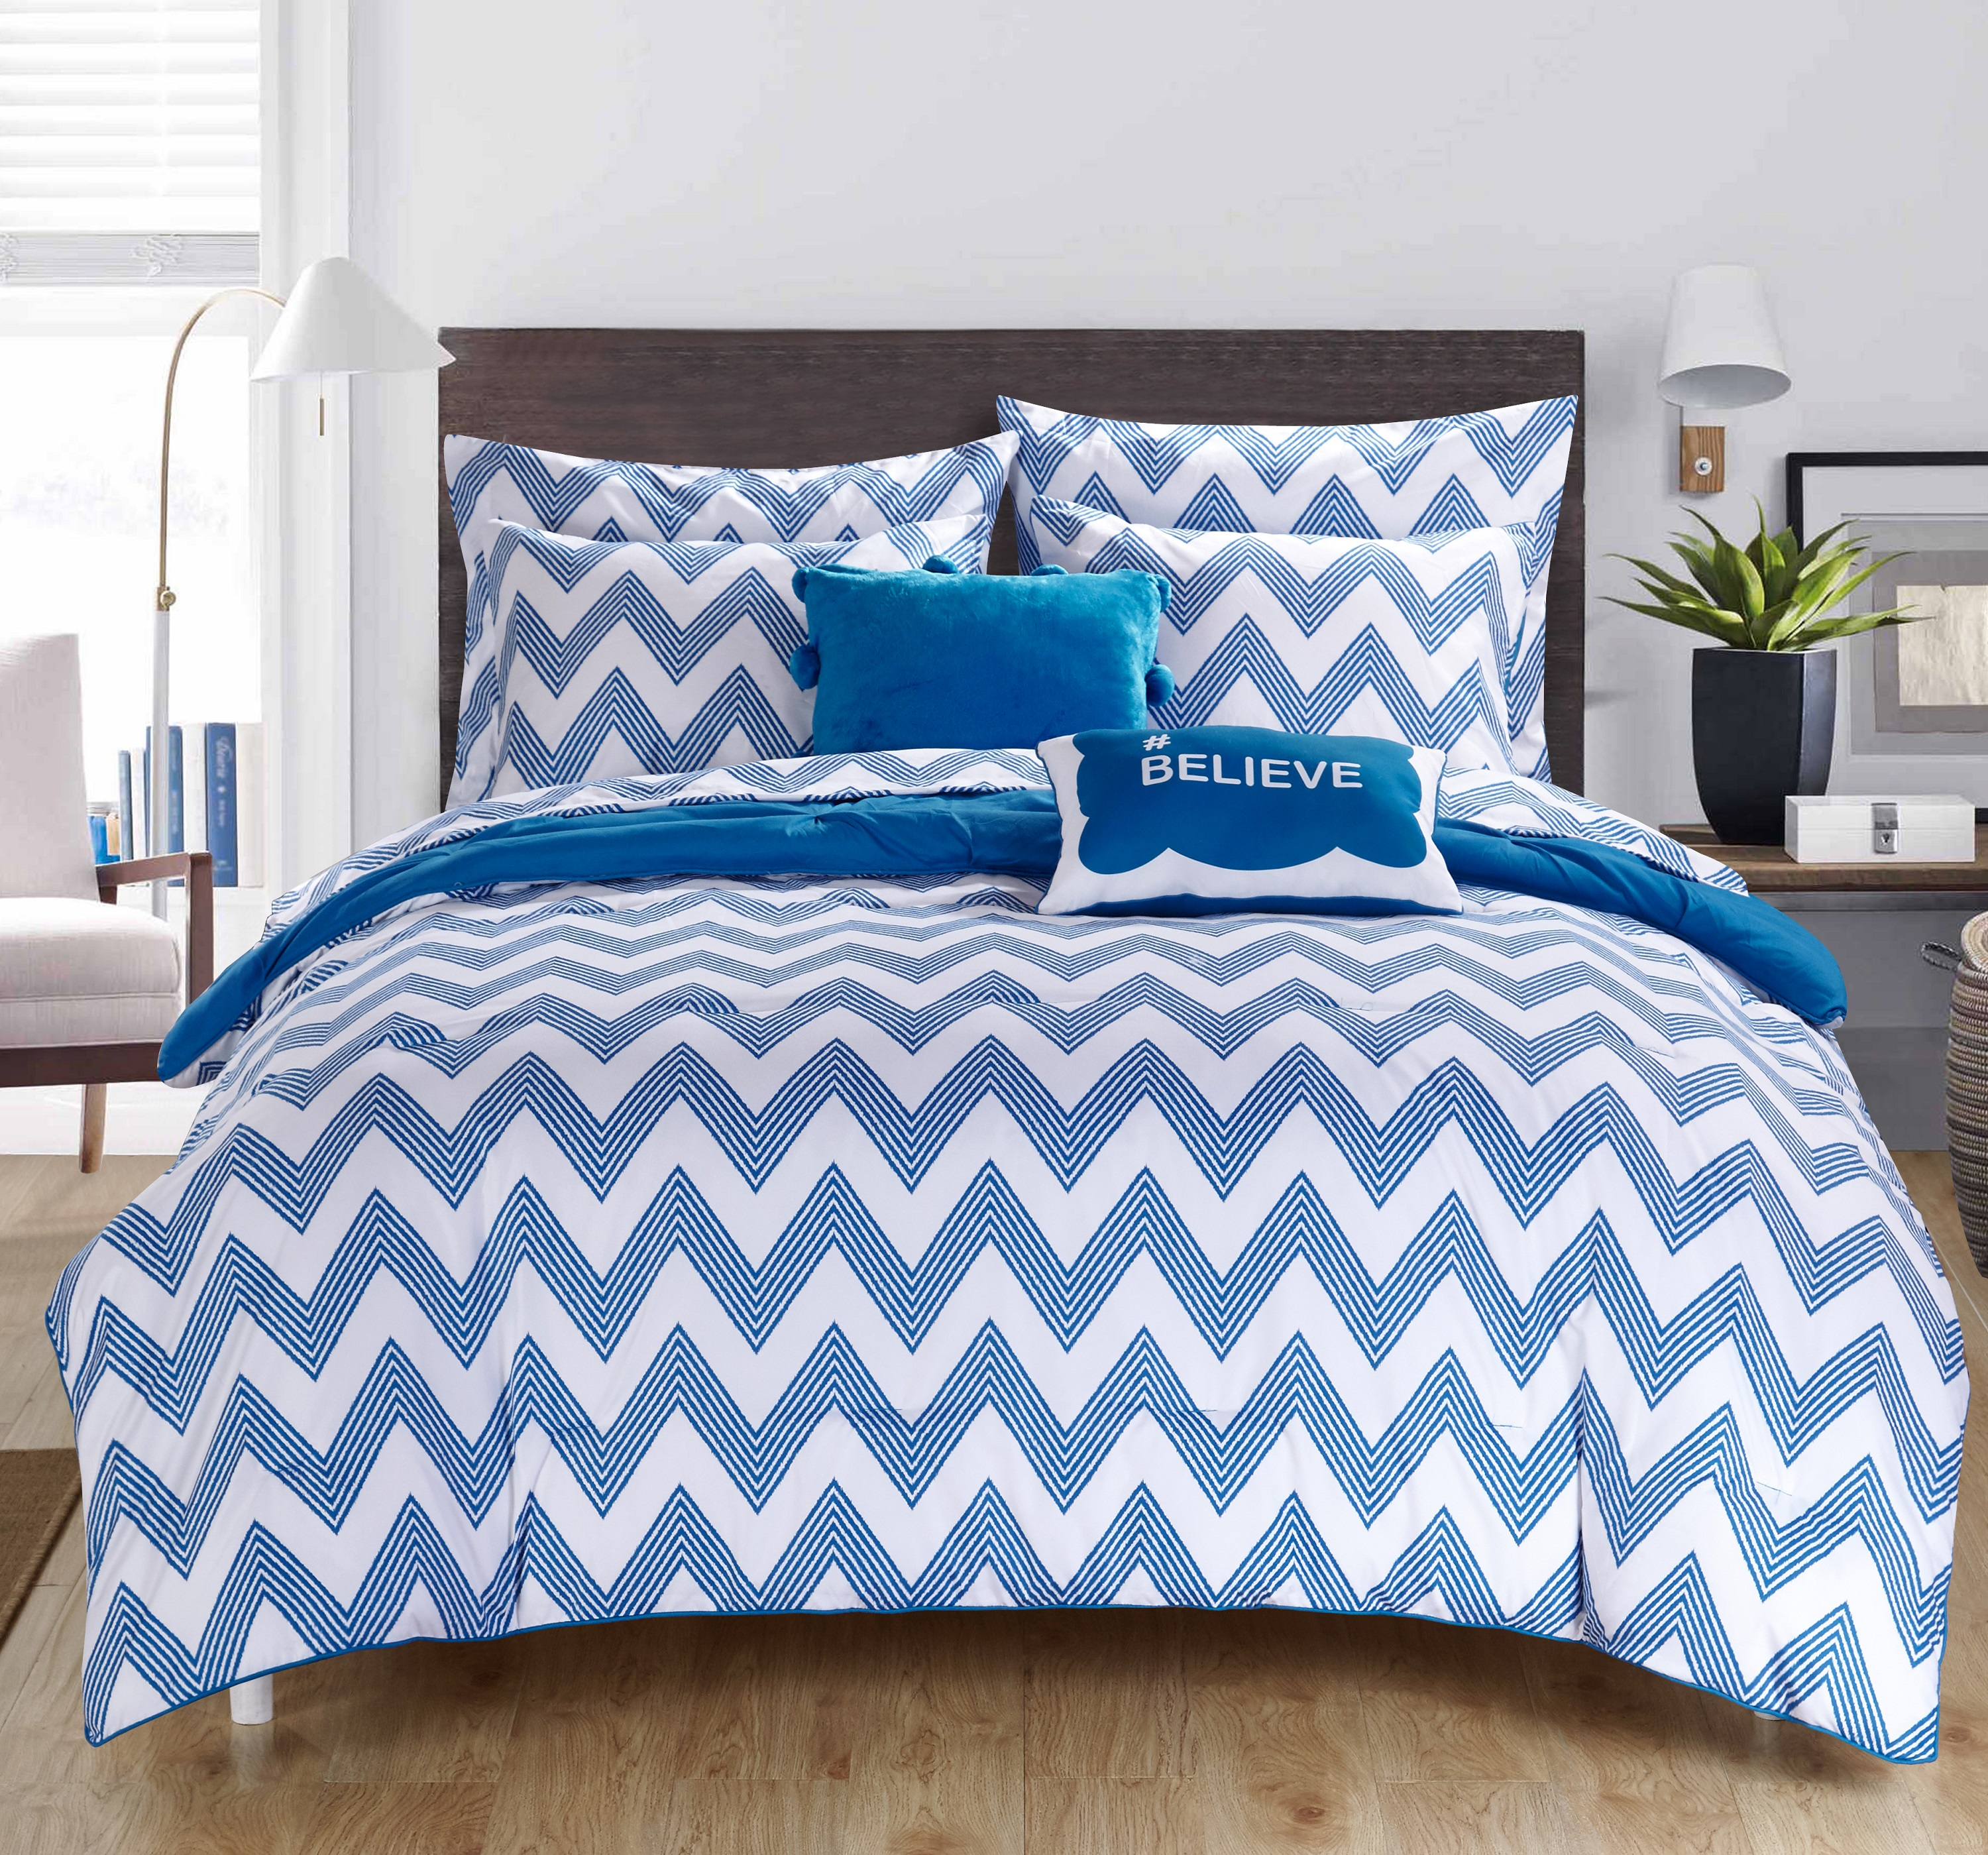 Chic Home 9-Piece Foxville REVERSIBLE Bed In a Bag Comforter Set